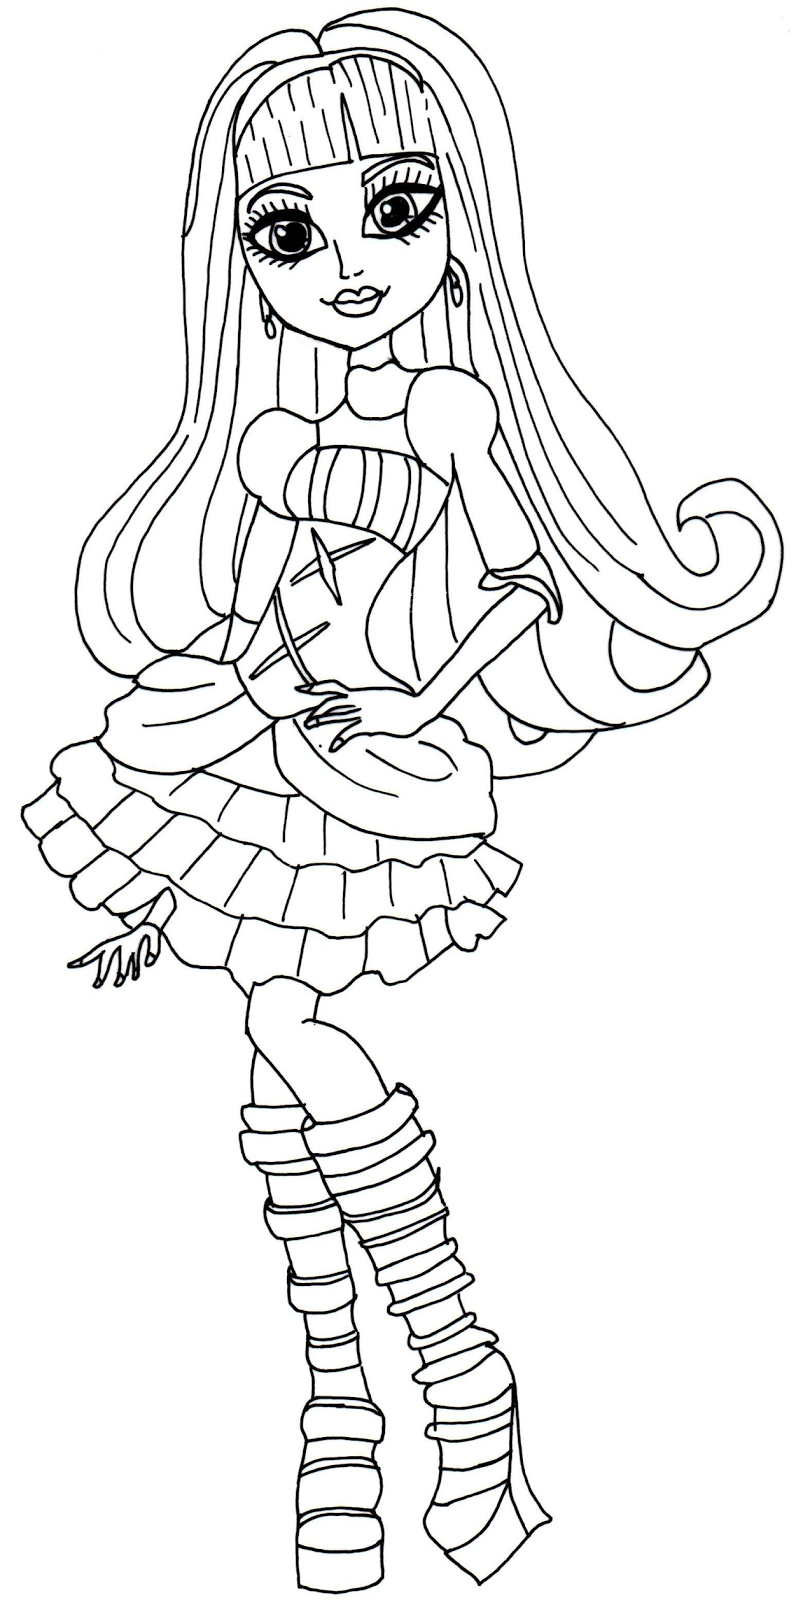 Free printable monster high coloring pages december 2013 for Monster high printables coloring pages